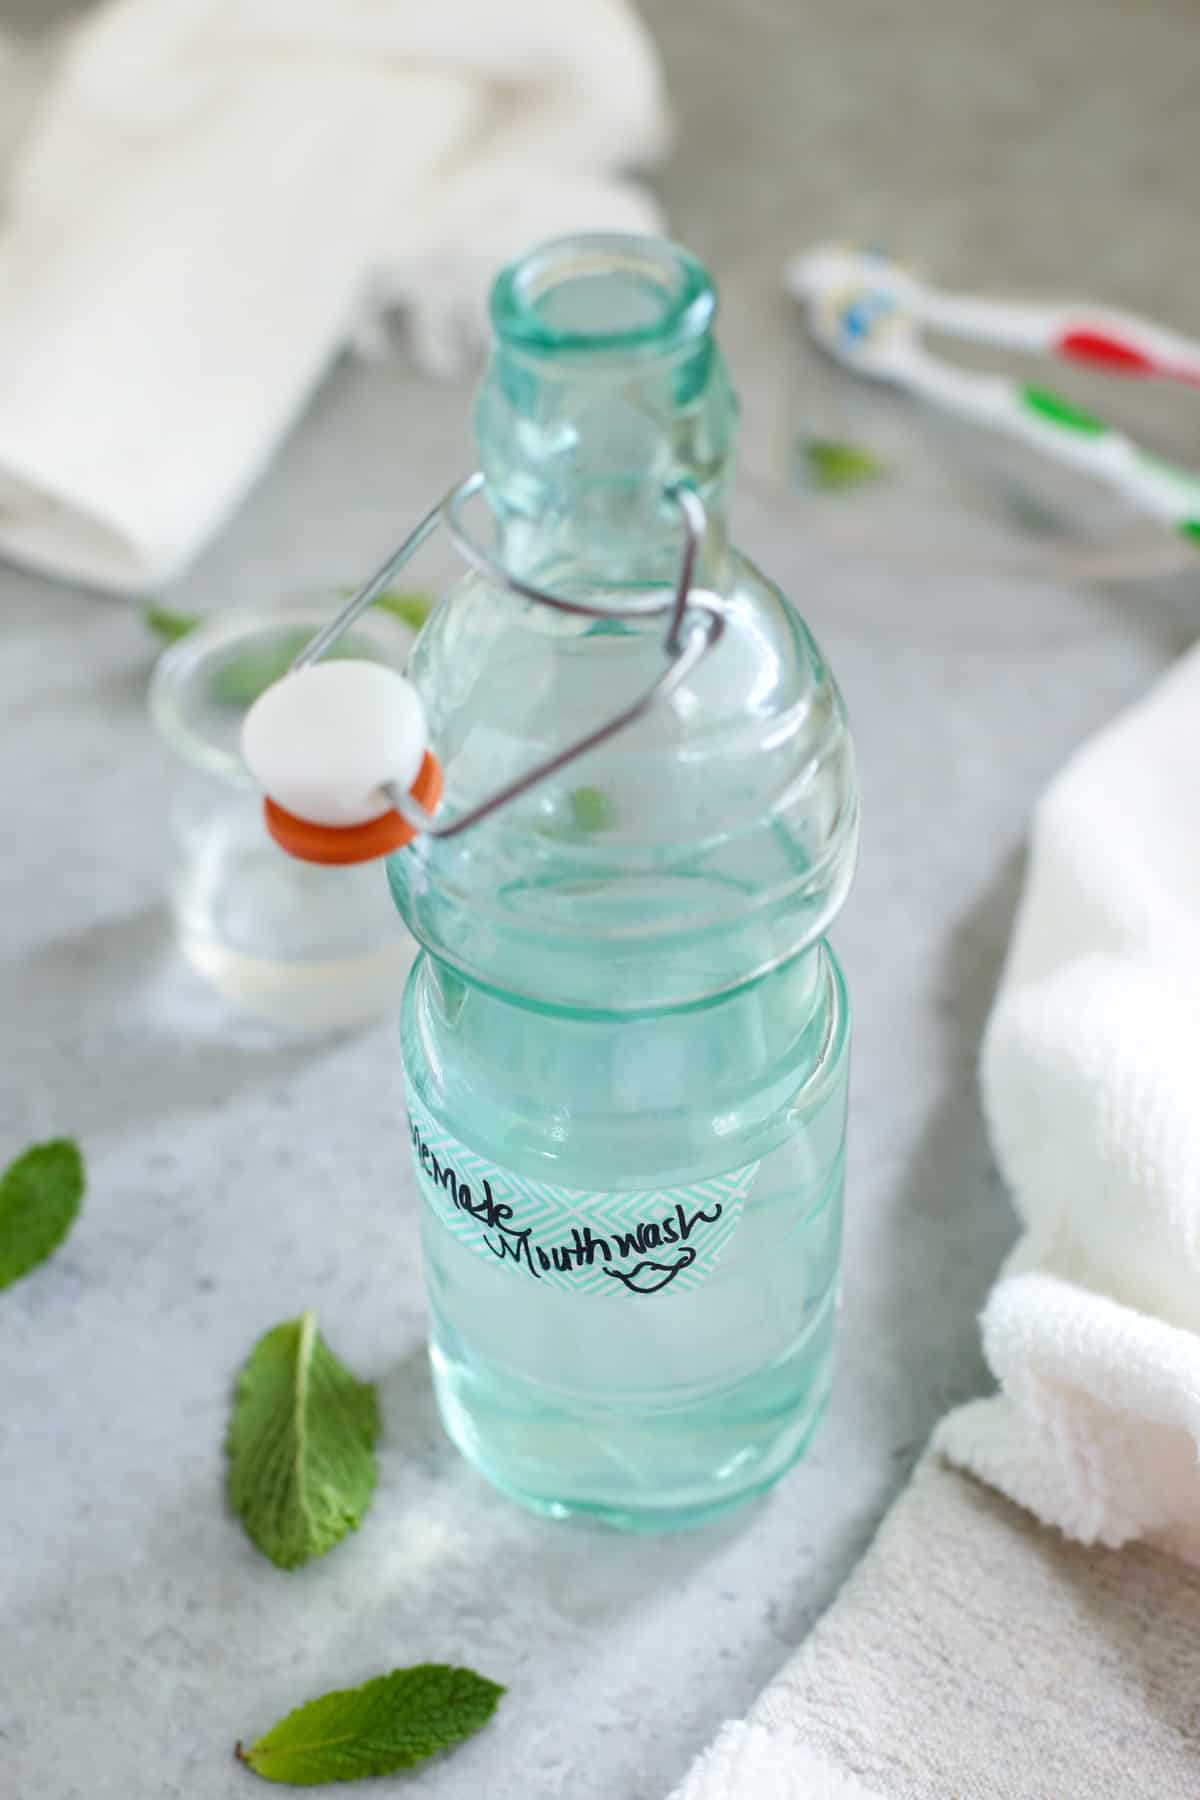 homemade-mouthwash-live-simply